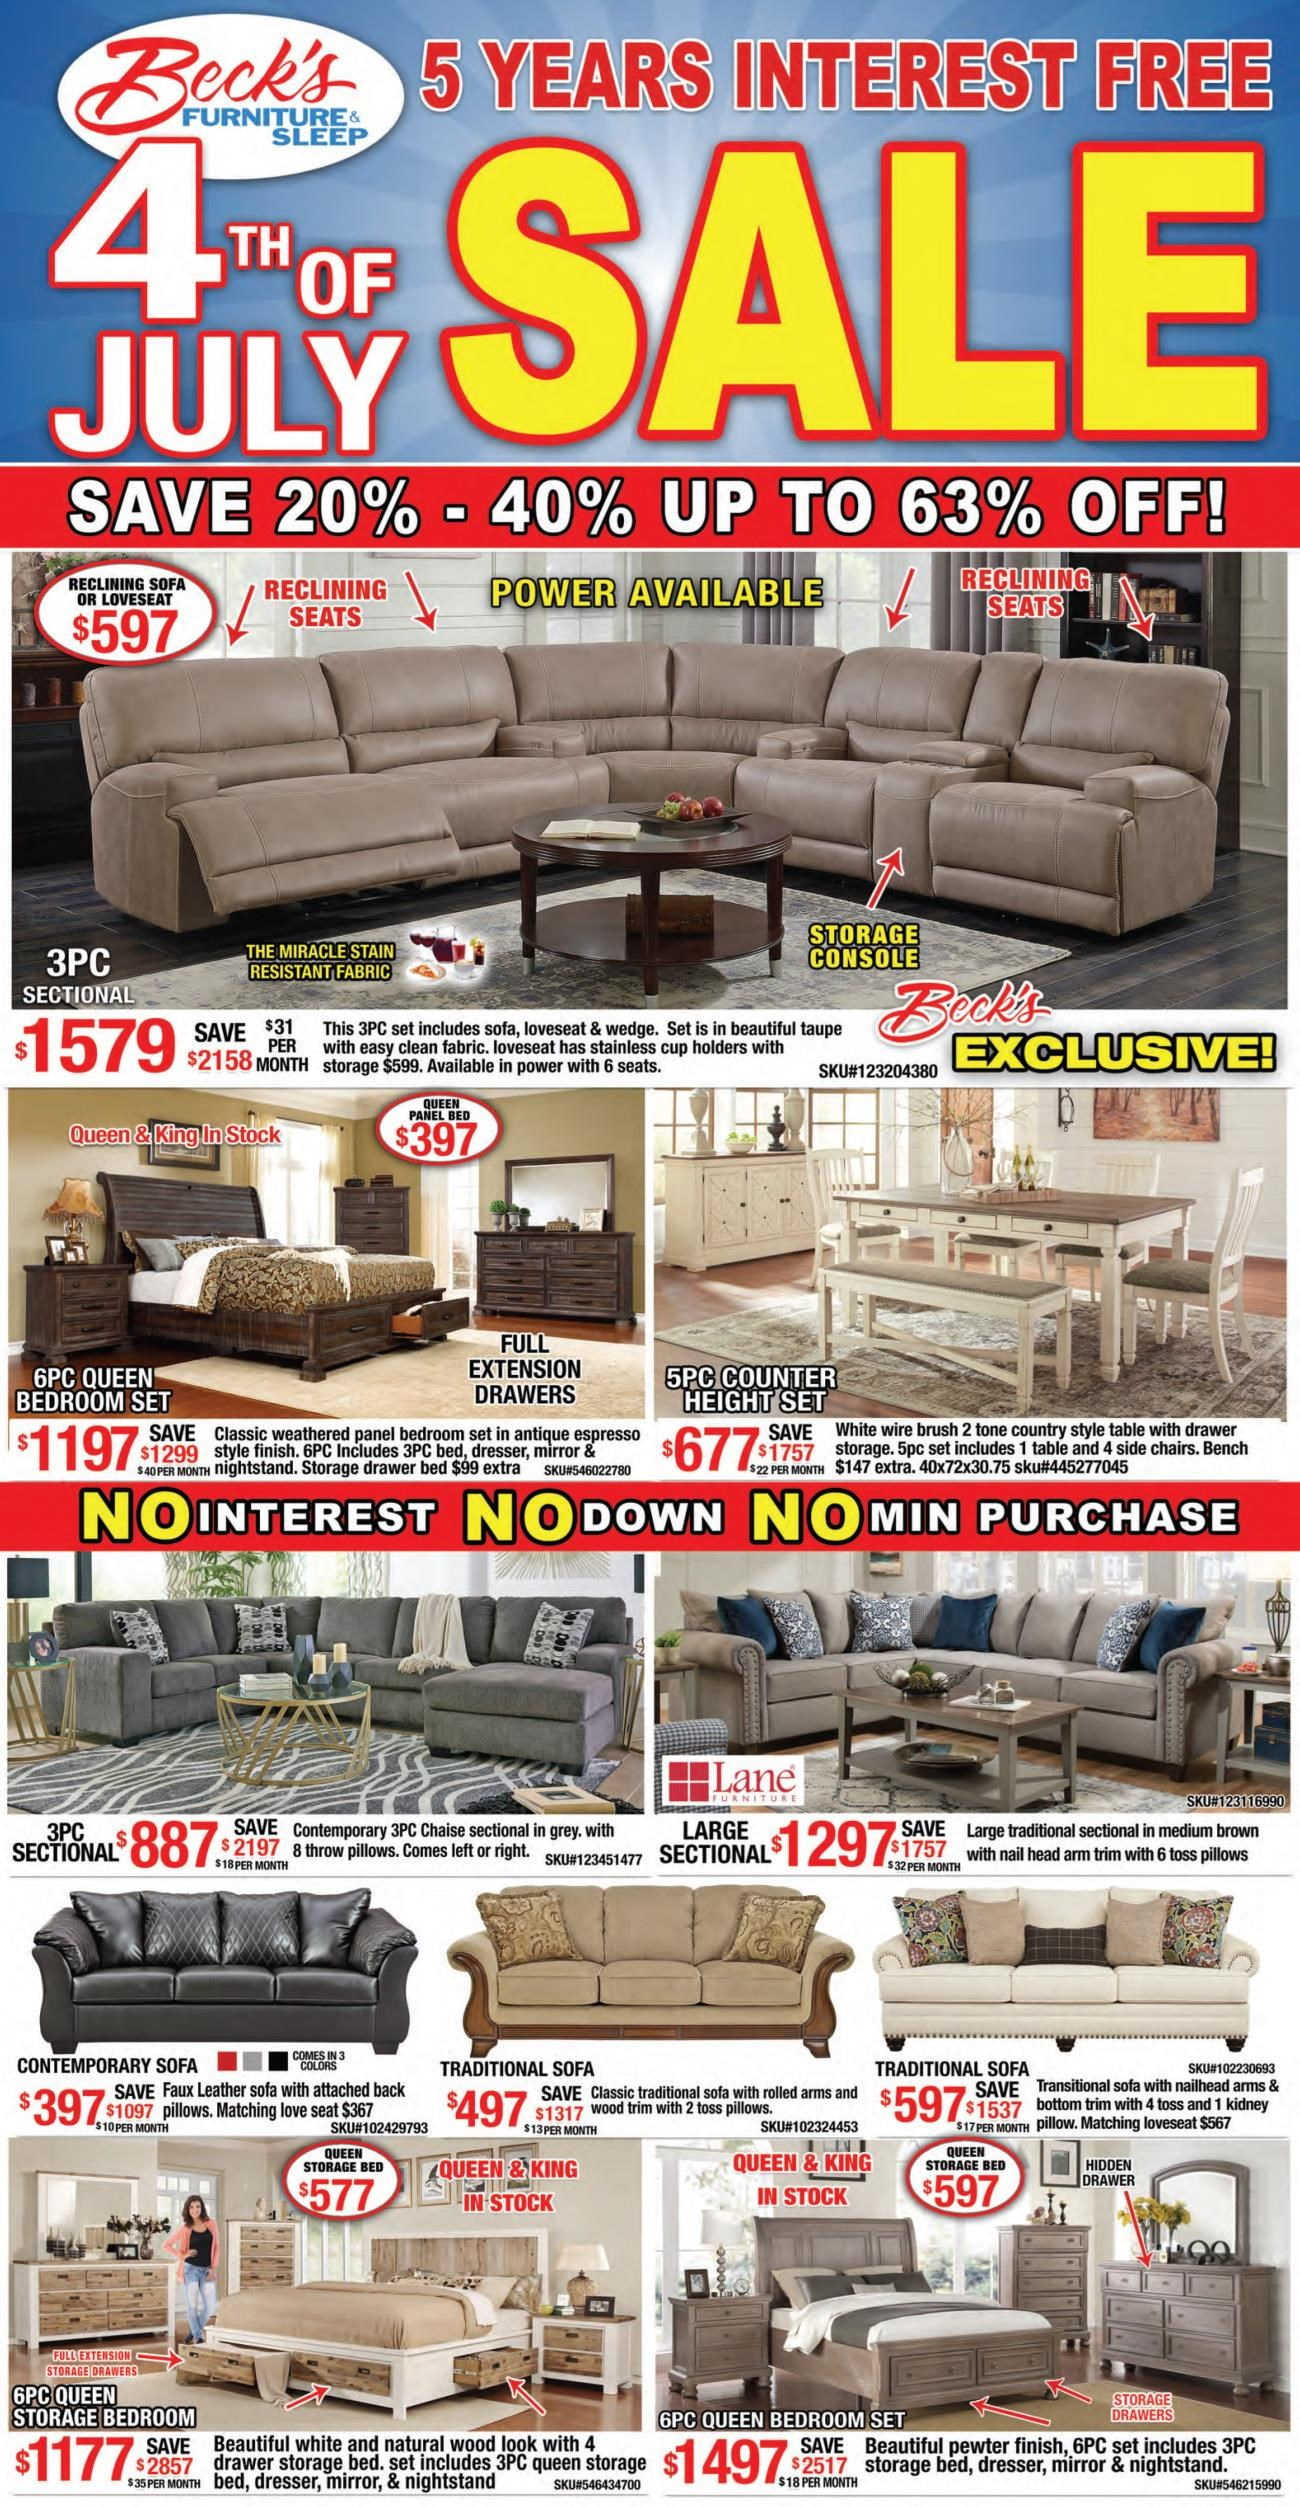 Furniture Deals Discounts Sacramento Rancho Cordova Roseville